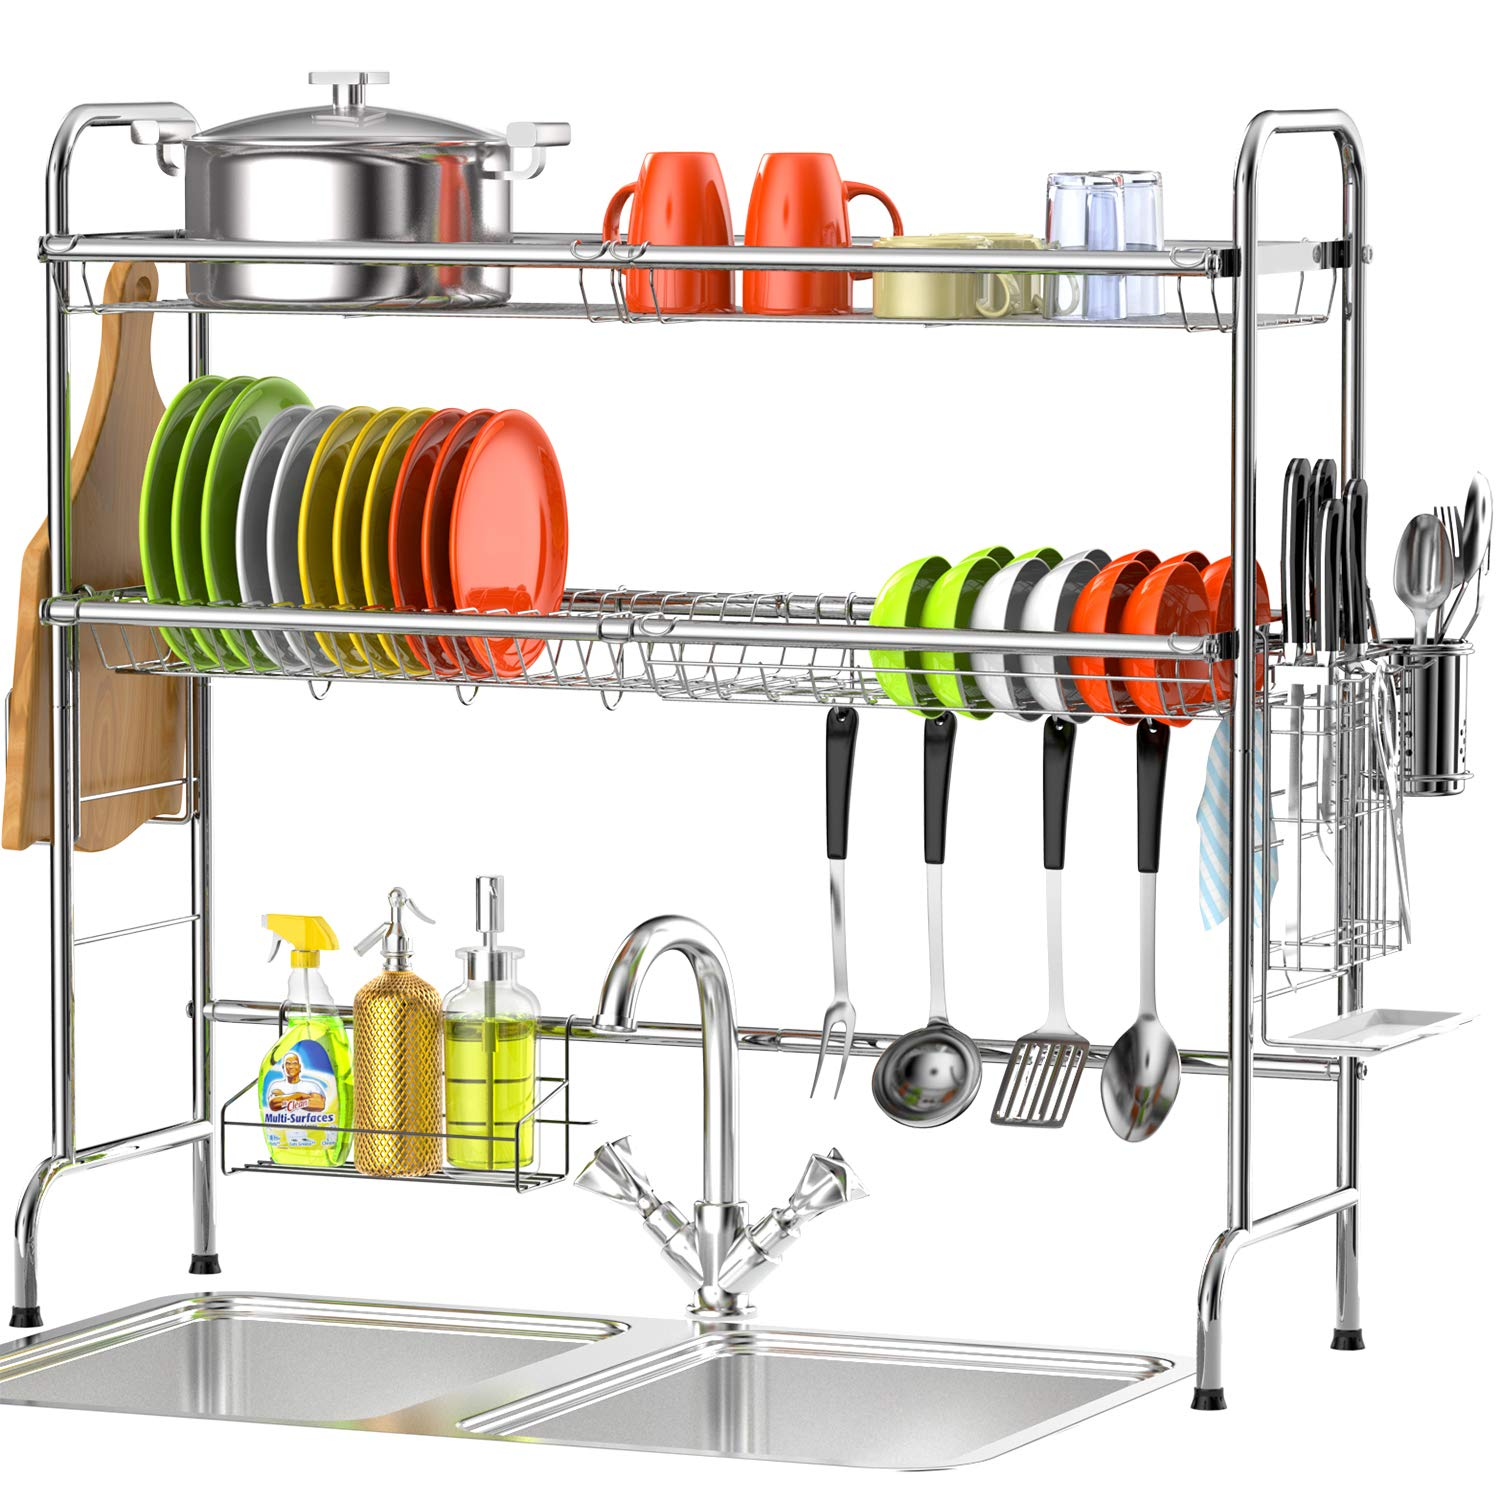 Over The Sink Dish Drying Rack Veckle 2 Tier Dish Rack Standing Dish Drainer Non Slip Stainless Steel Dish Dryer Utensil Holder Cutting Board Holder Kitchen Counter Shelf Storage Rack Silver